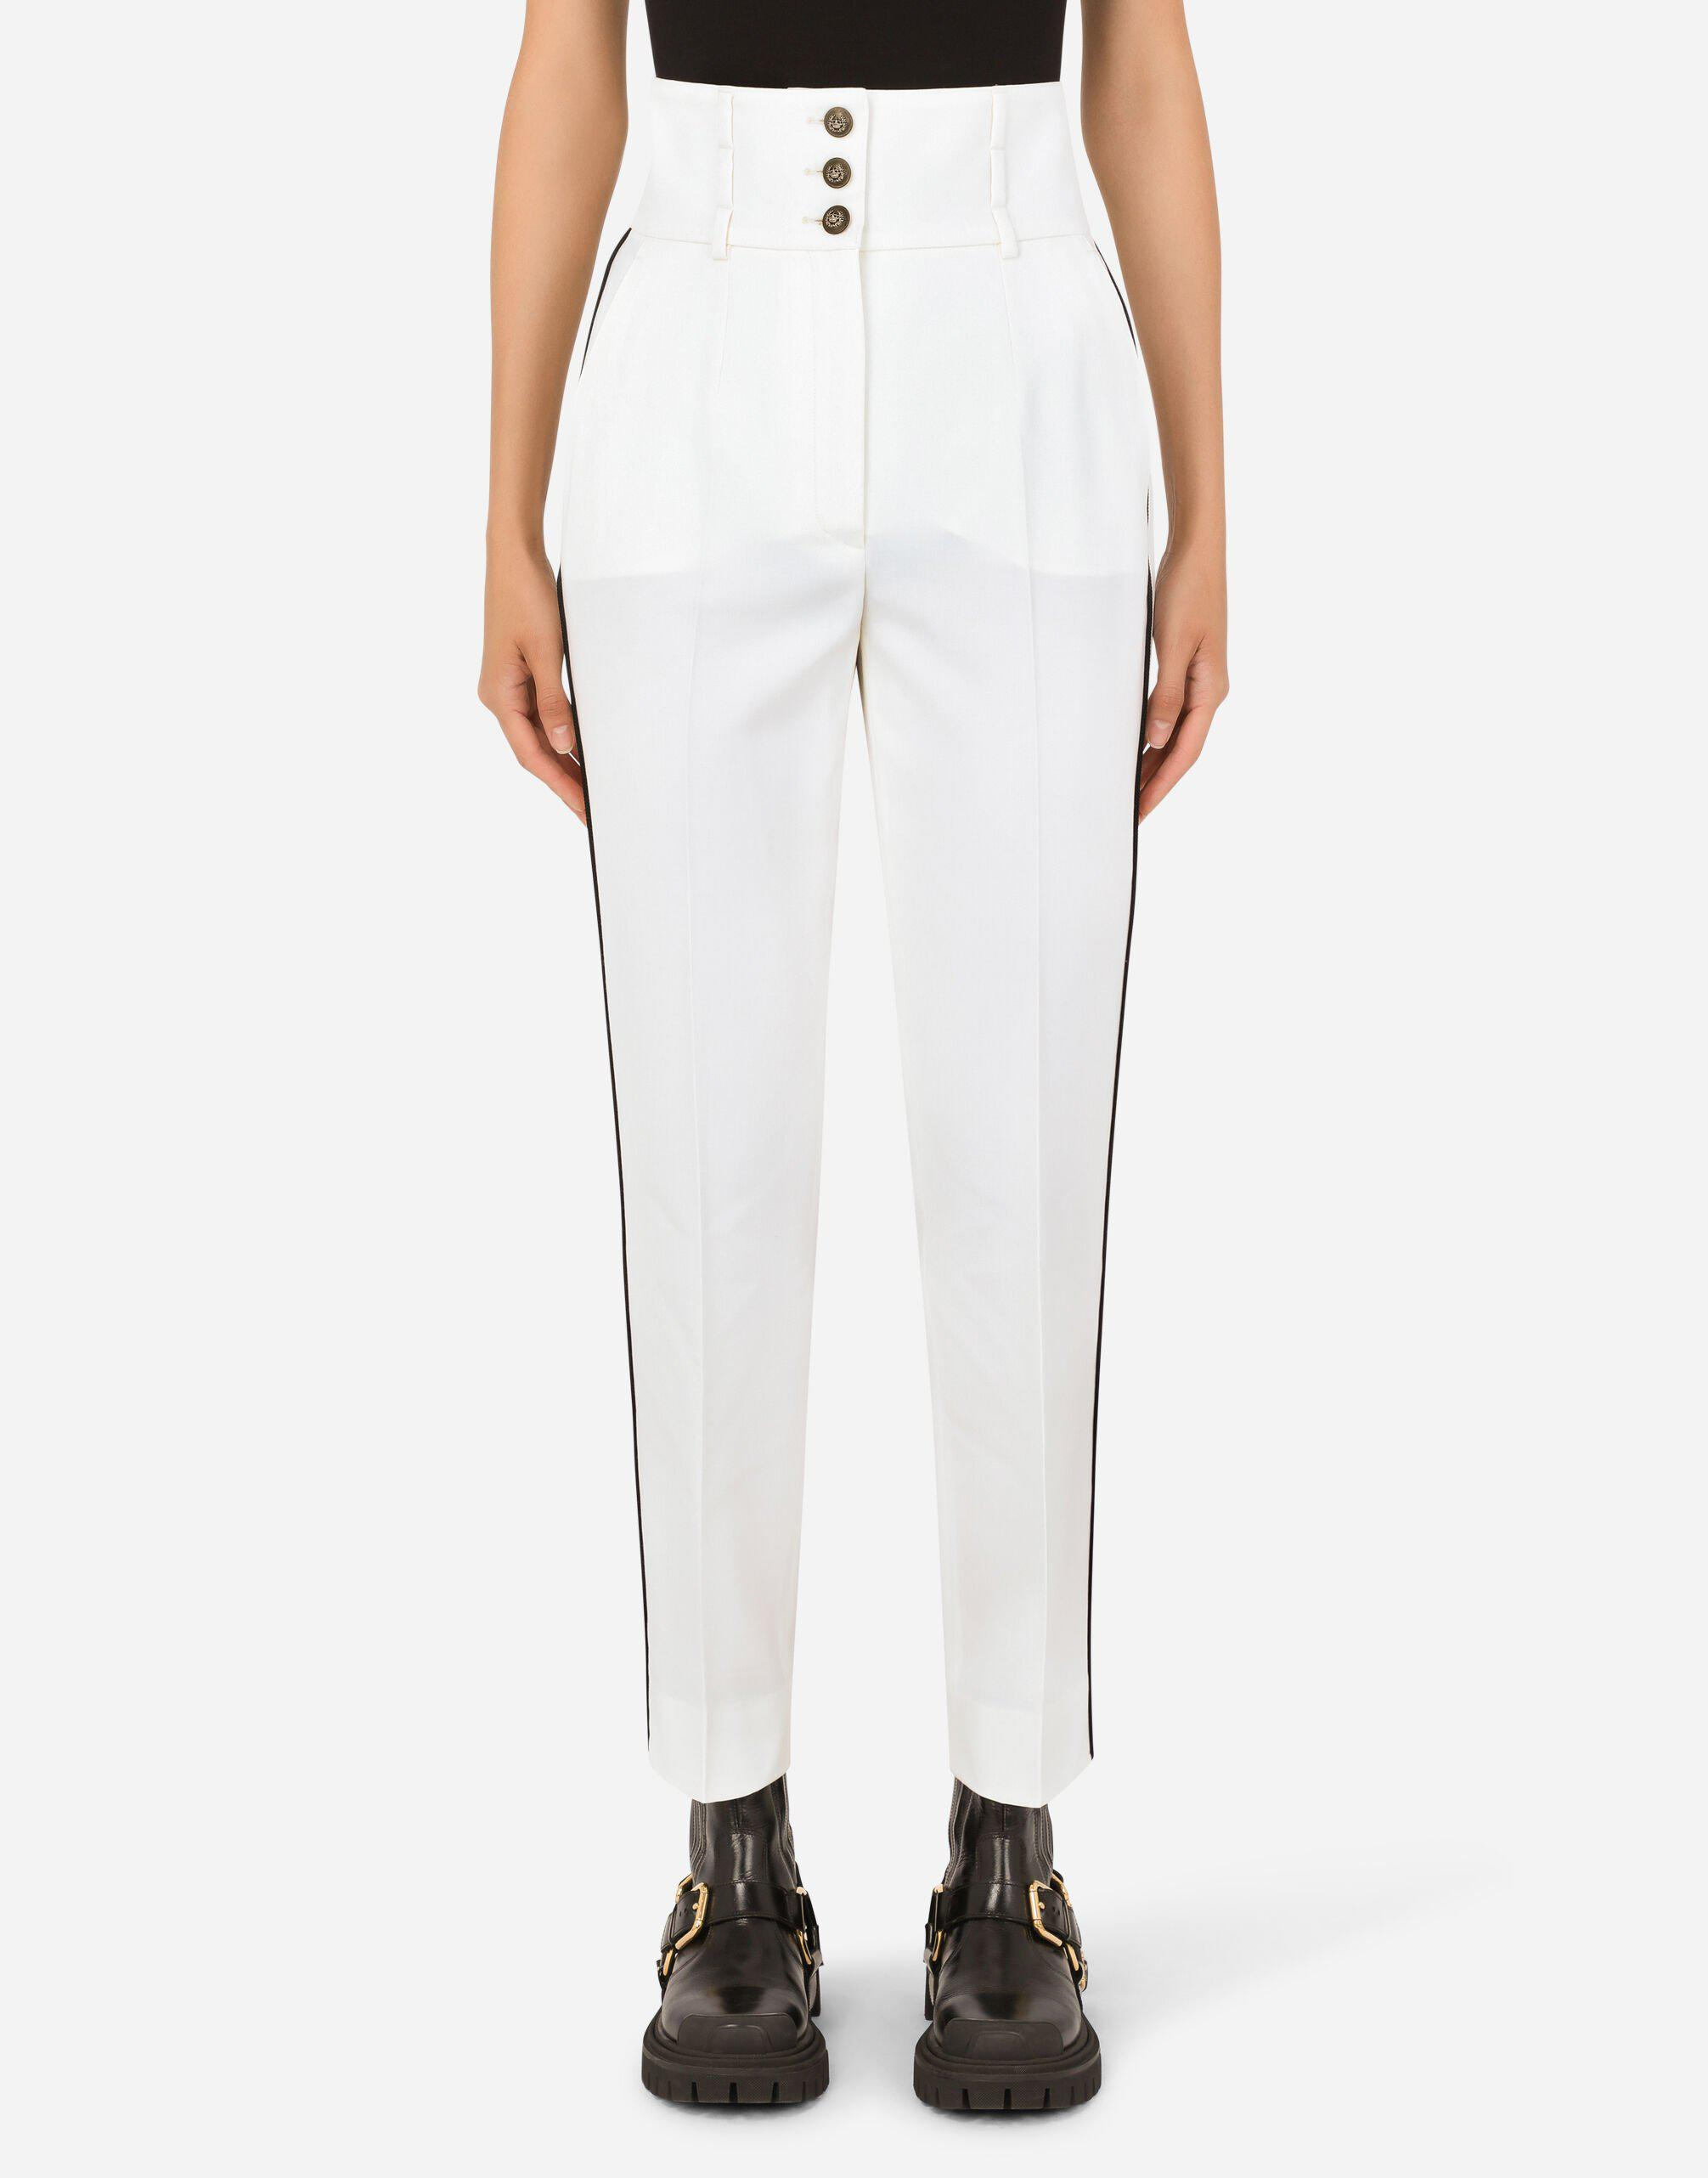 High-waisted twill pants with heraldic buttons